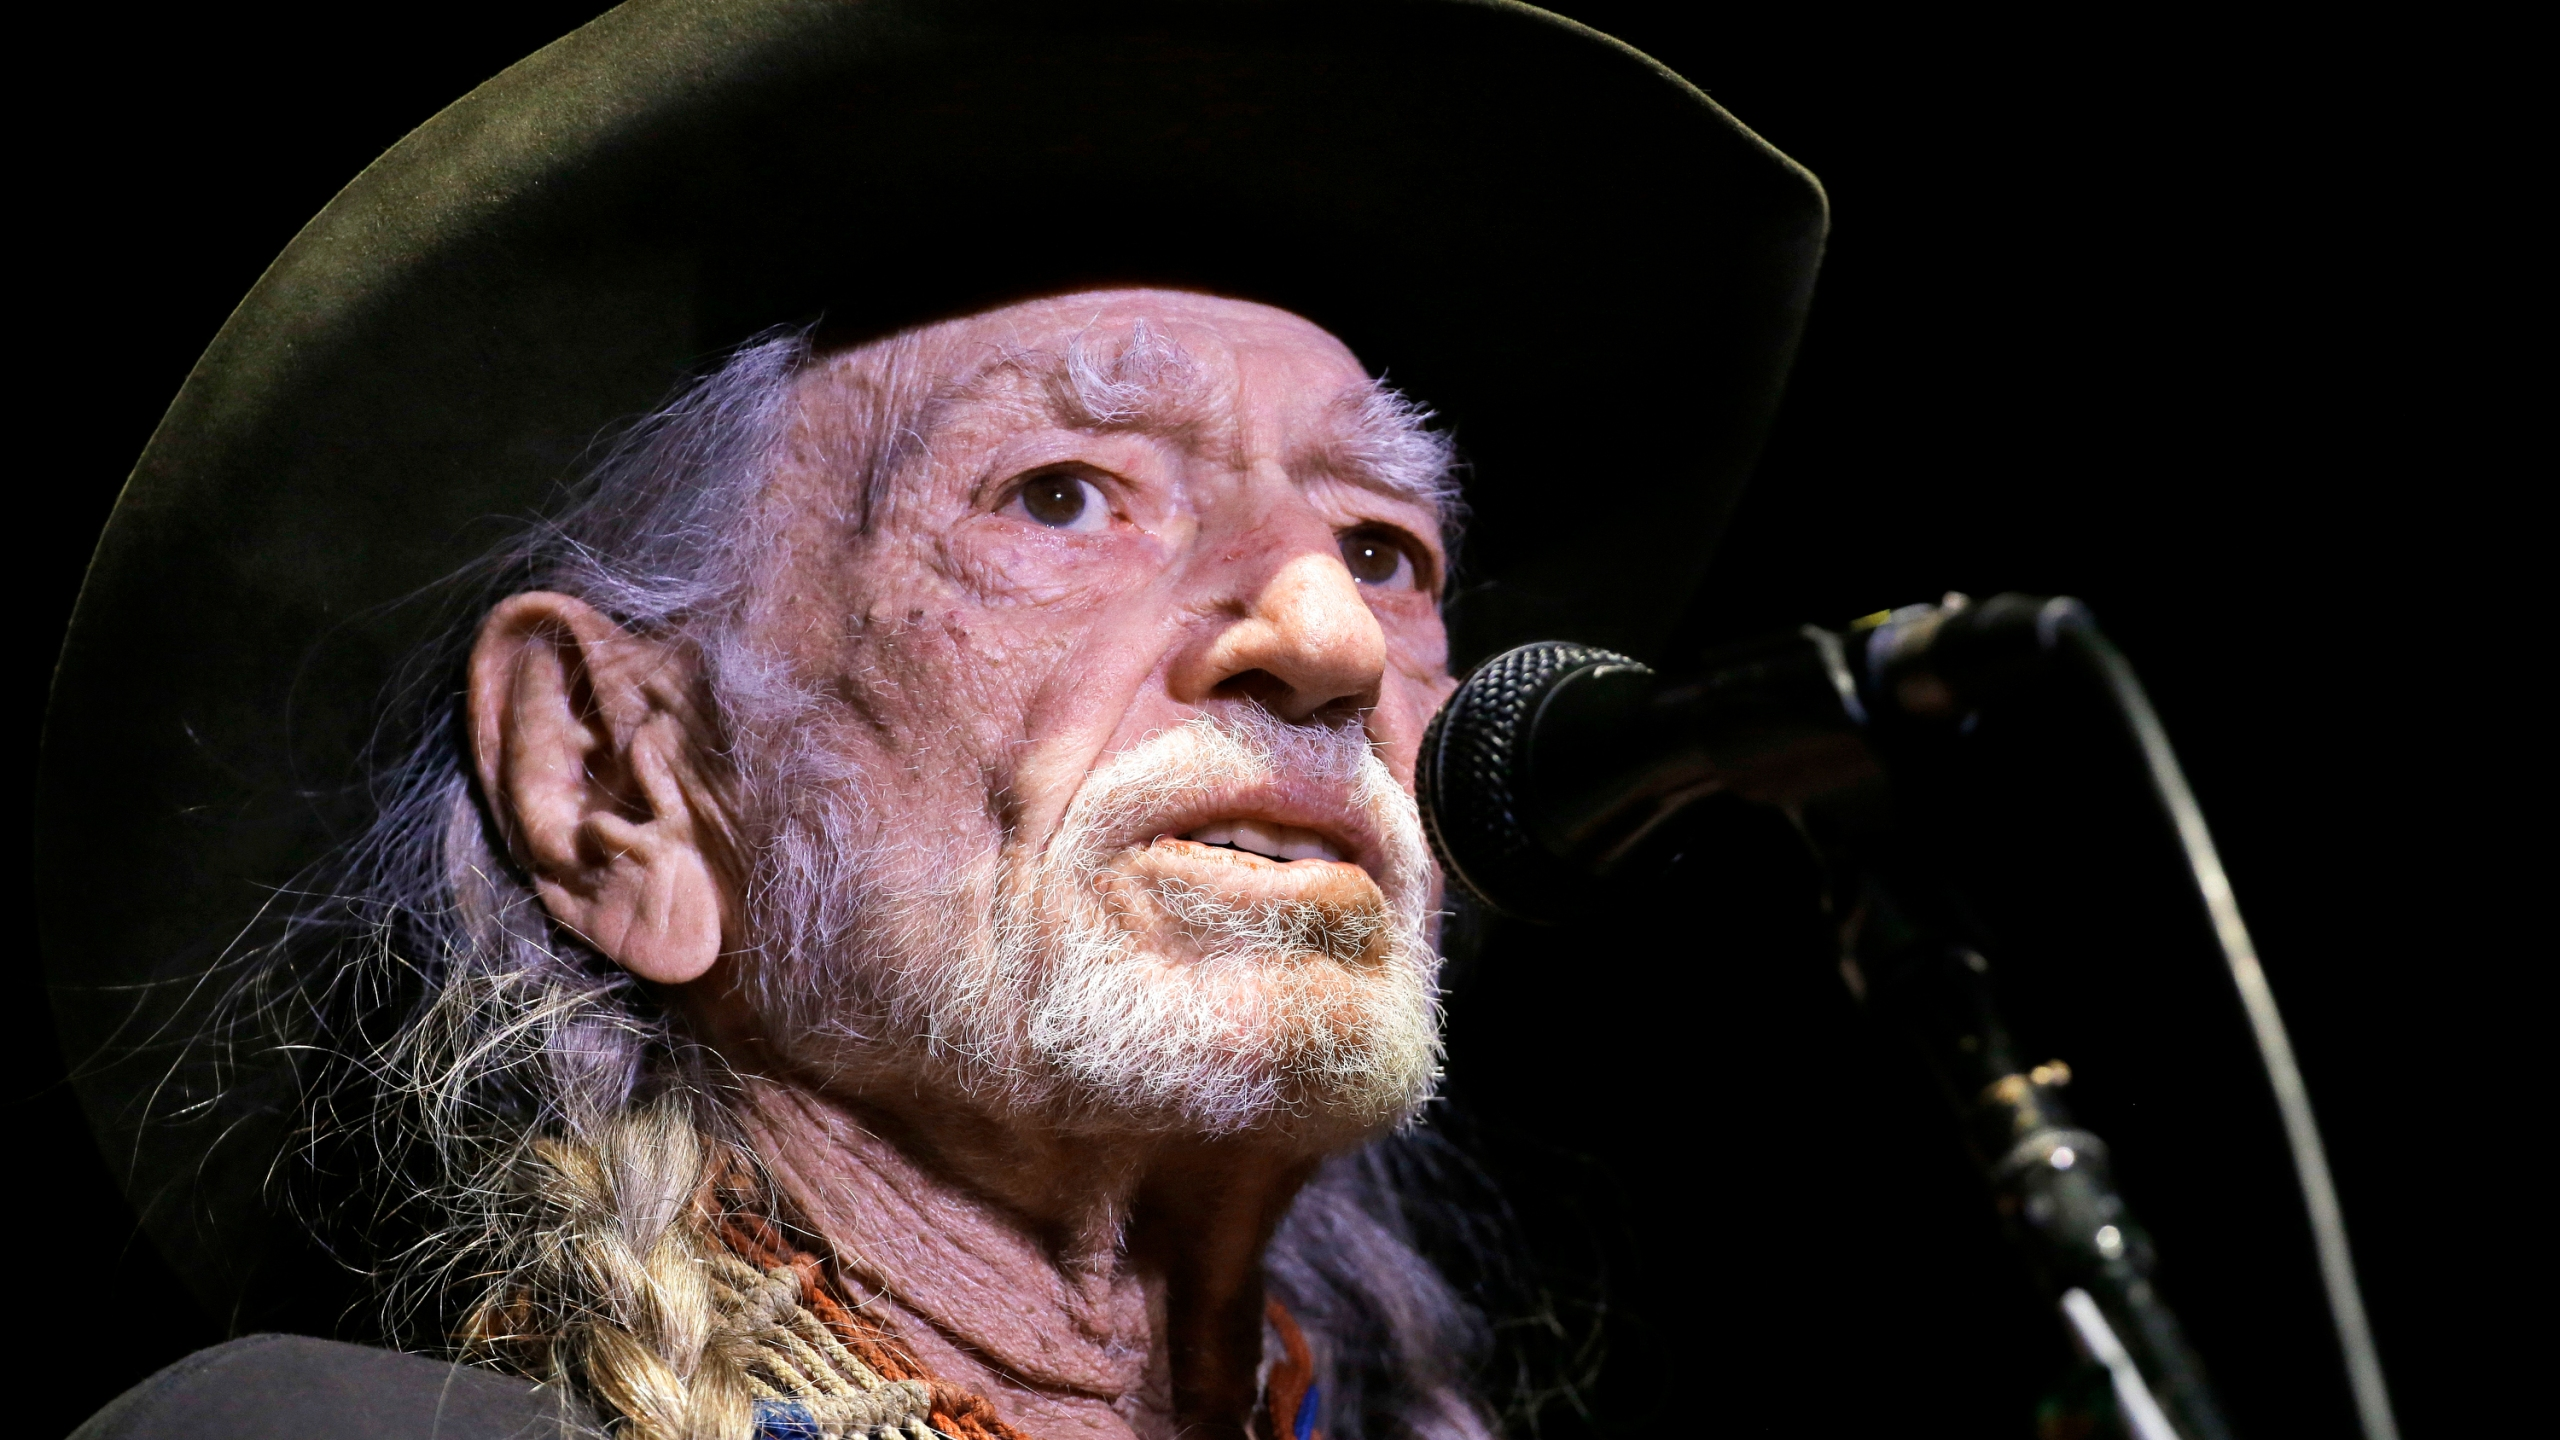 Music_Willie_Nelson_04915-159532.jpg01425530